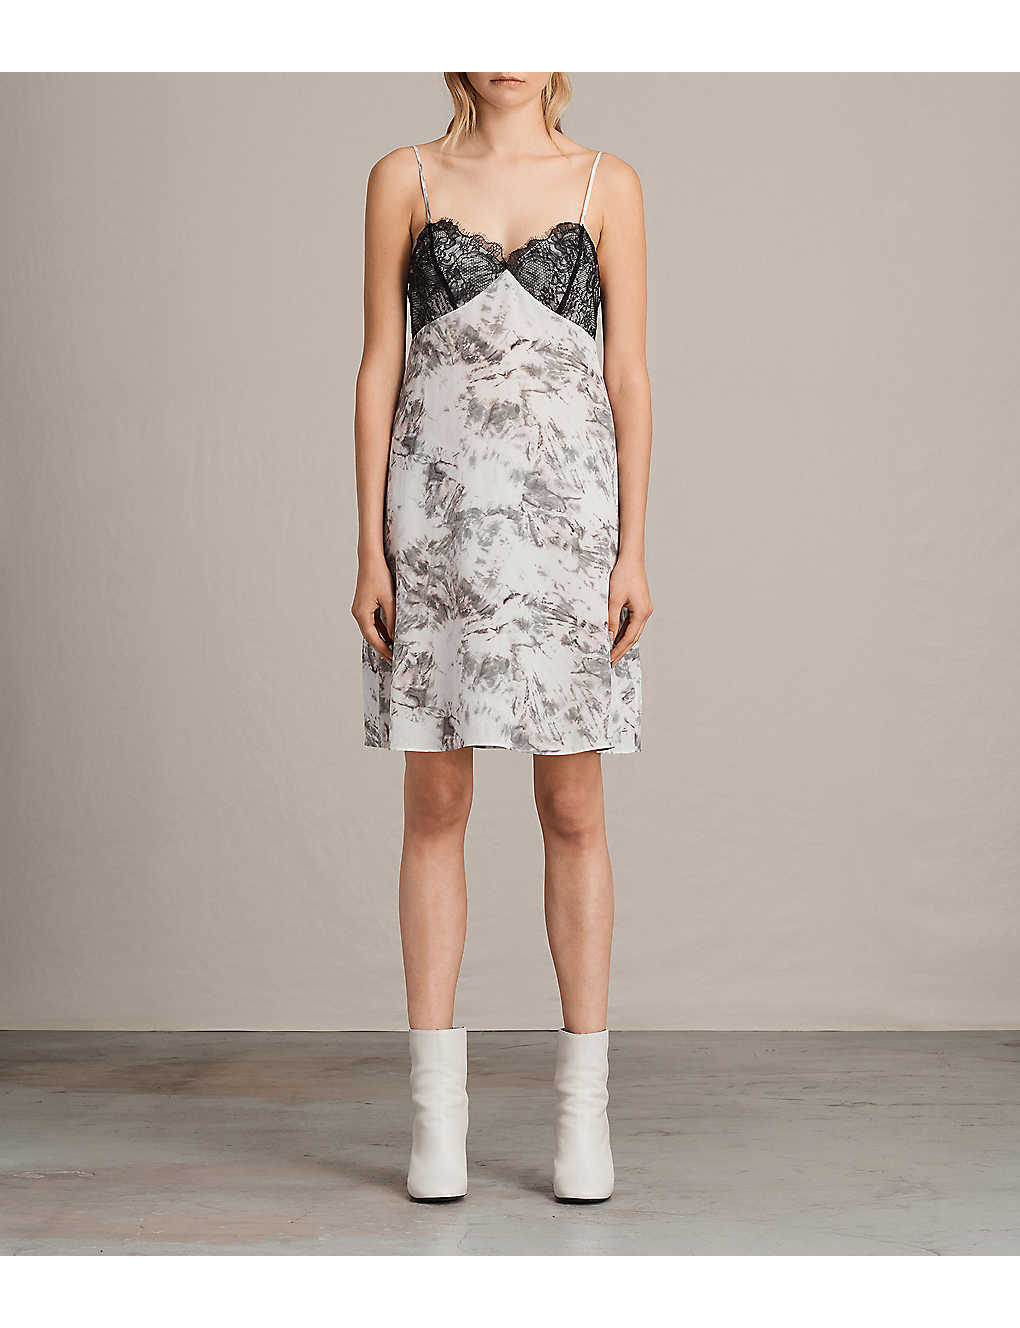 9b59ecc1cc5d ALLSAINTS - Ives Tyde Silk Dress | Selfridges.com